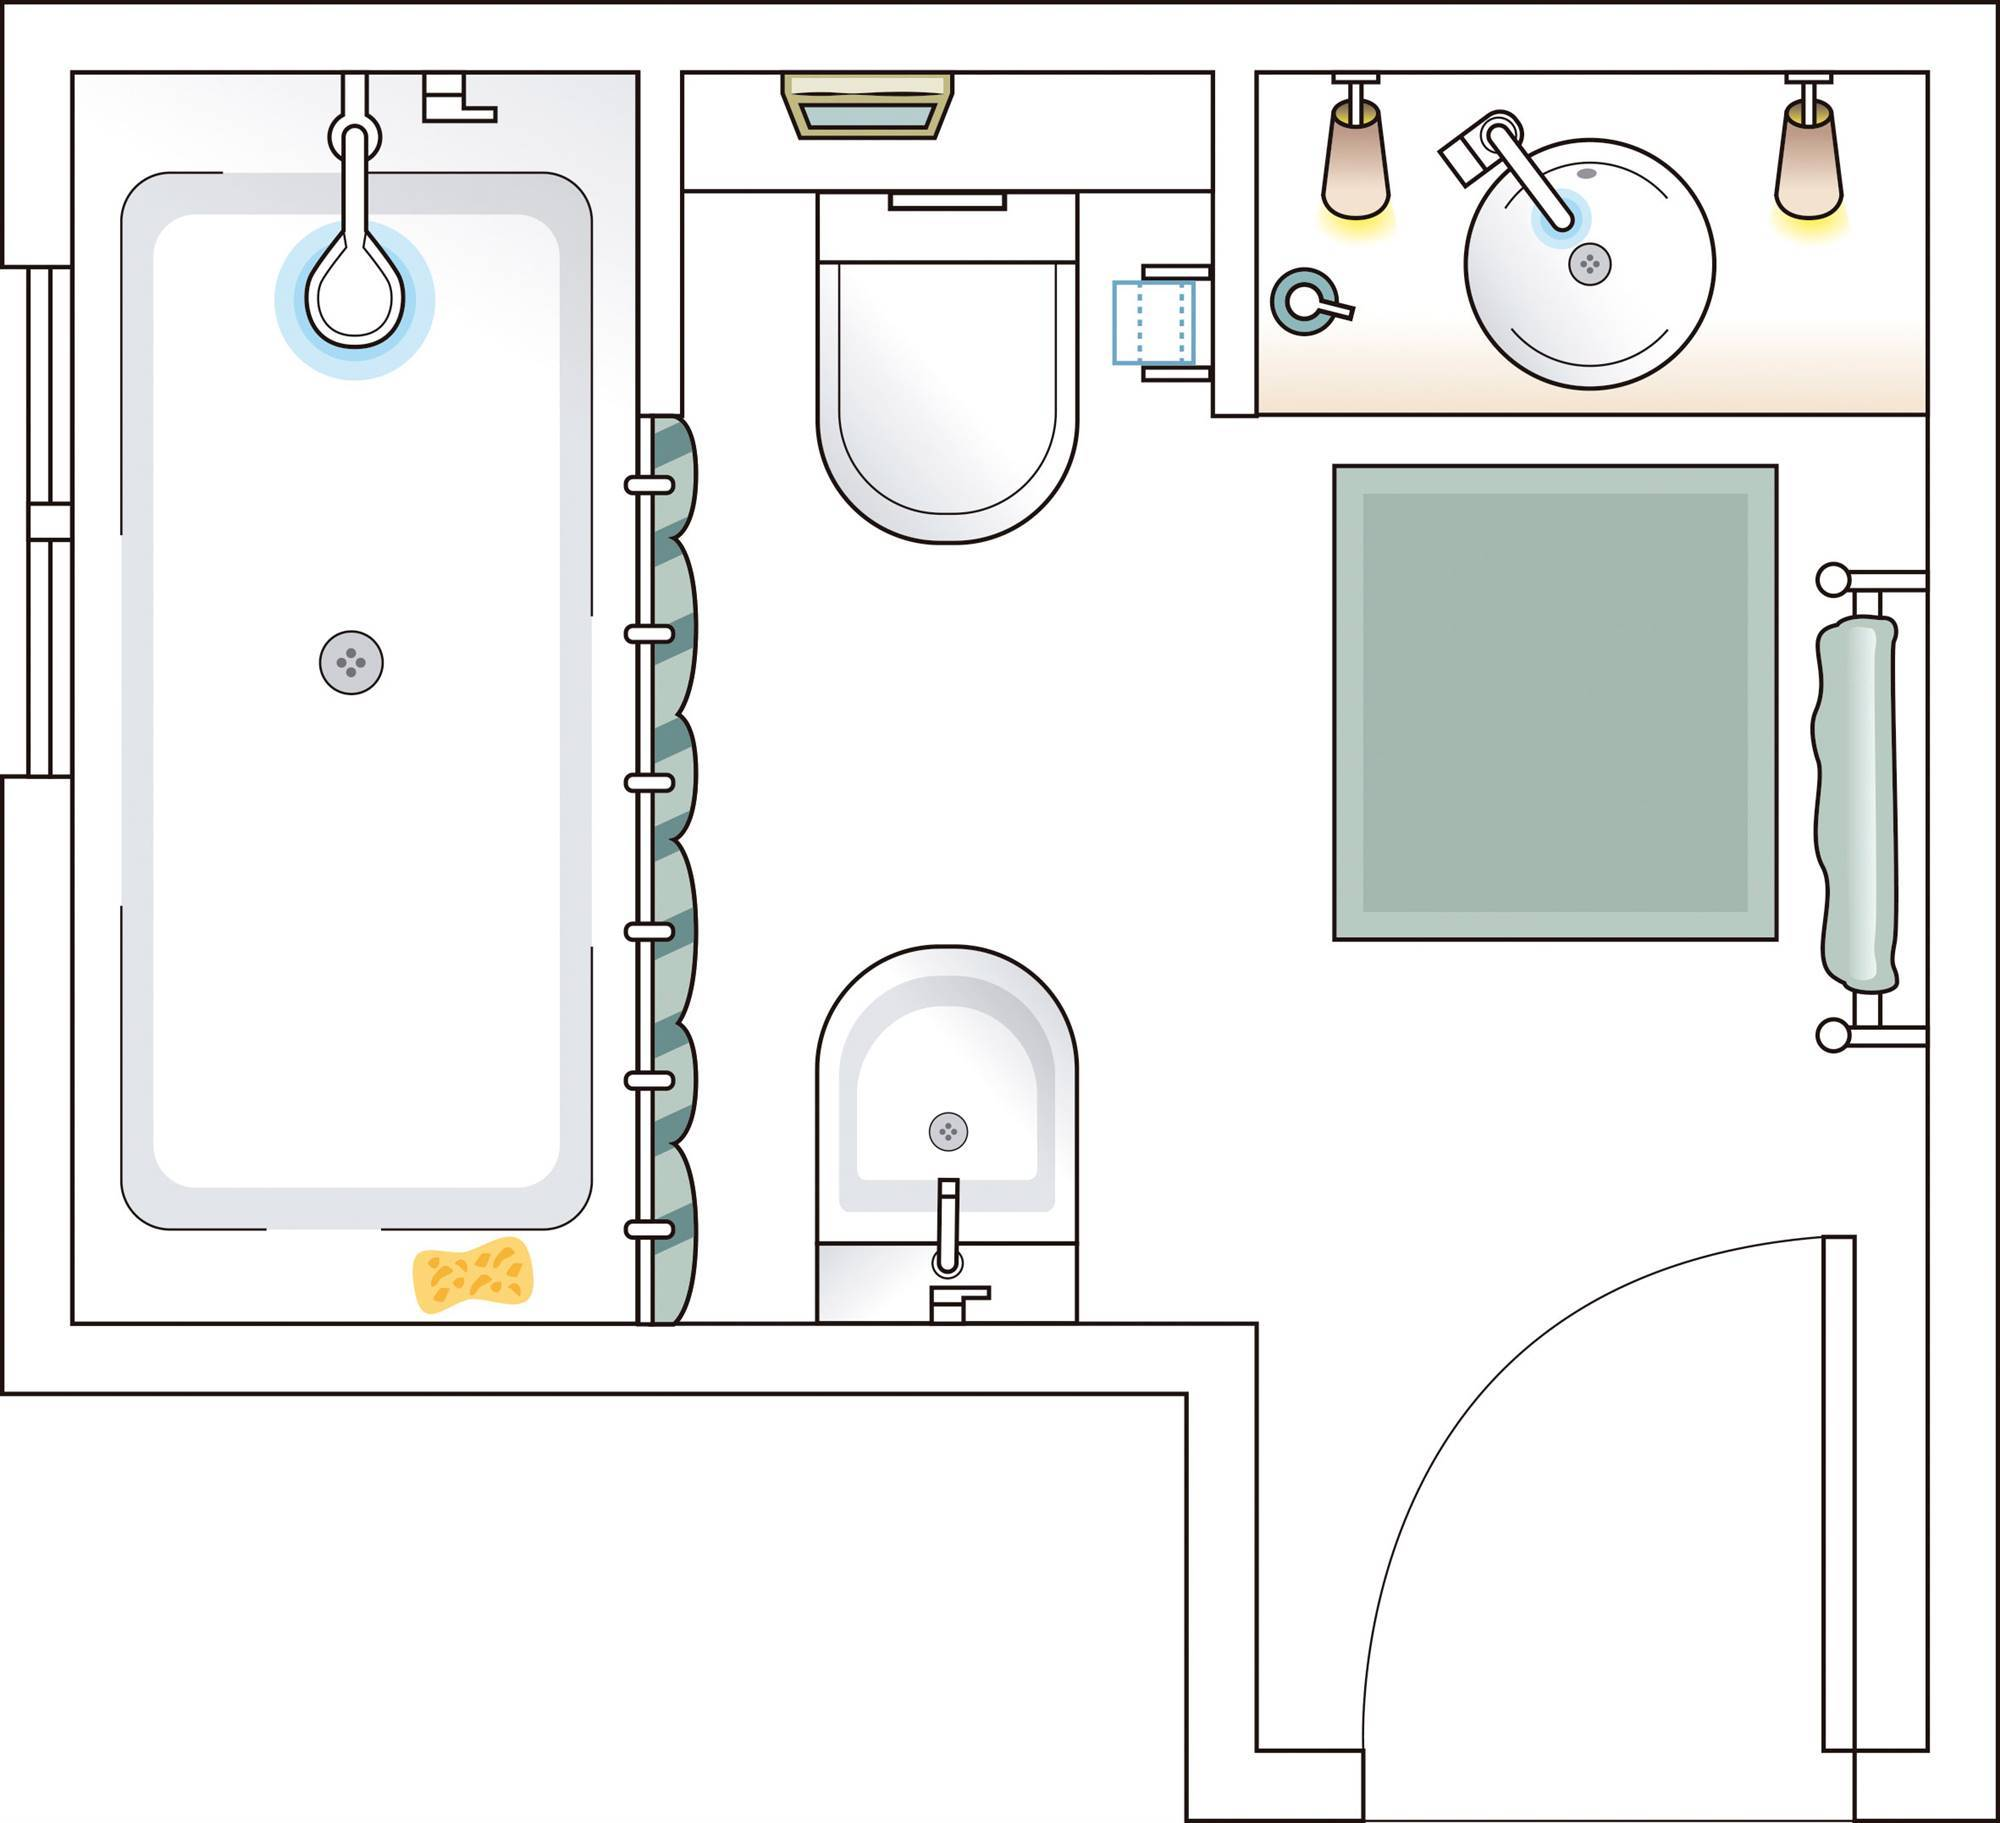 Bathroom plan of less than 6 m2 00498688. Small and with divisions